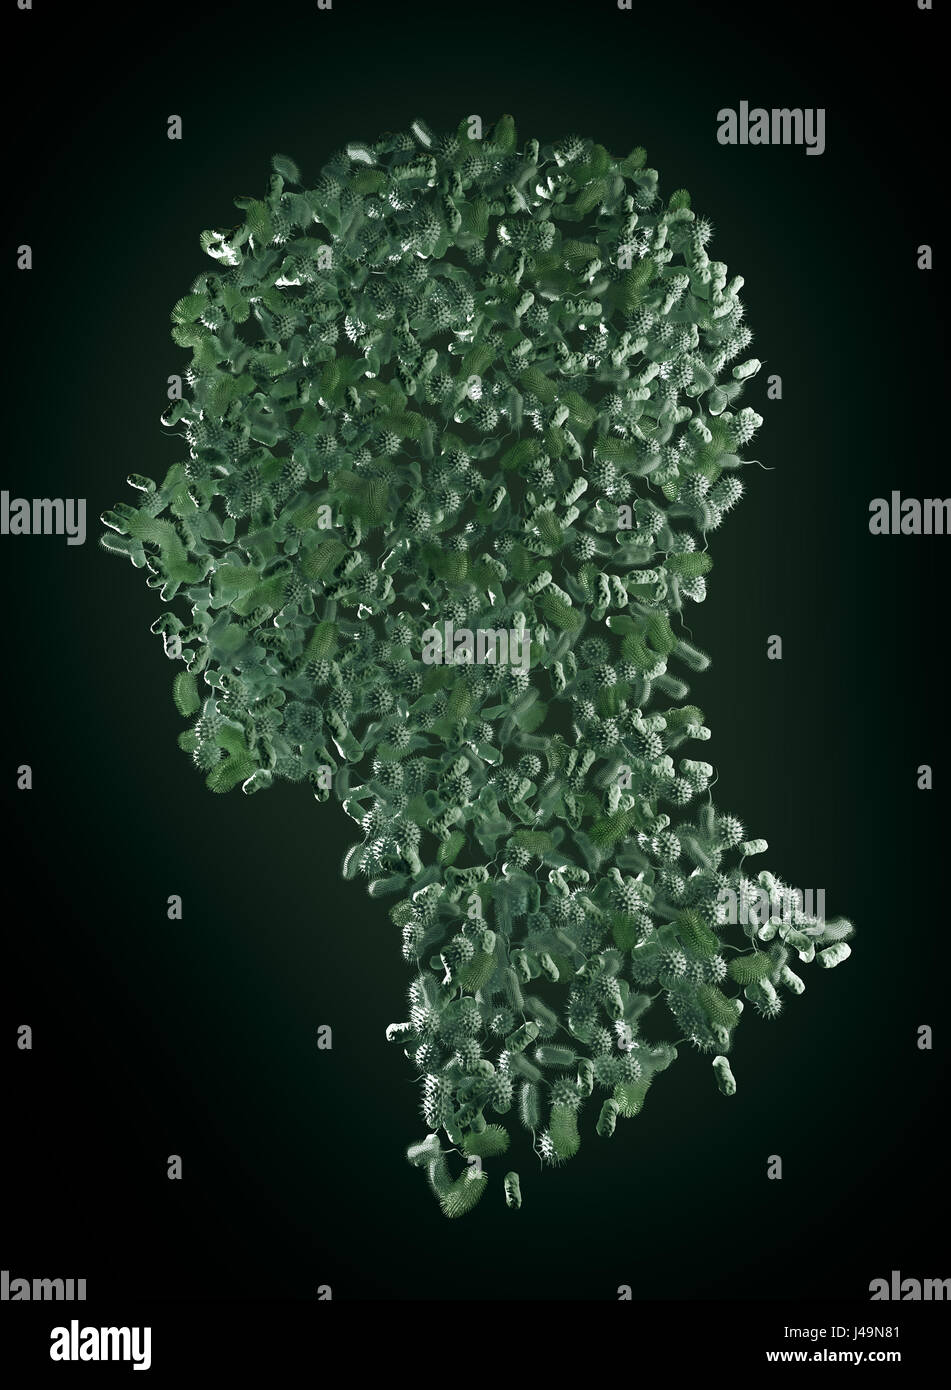 Bacteria forming a human body - microbiome and probiotics concept 3D illustration. - Stock Image